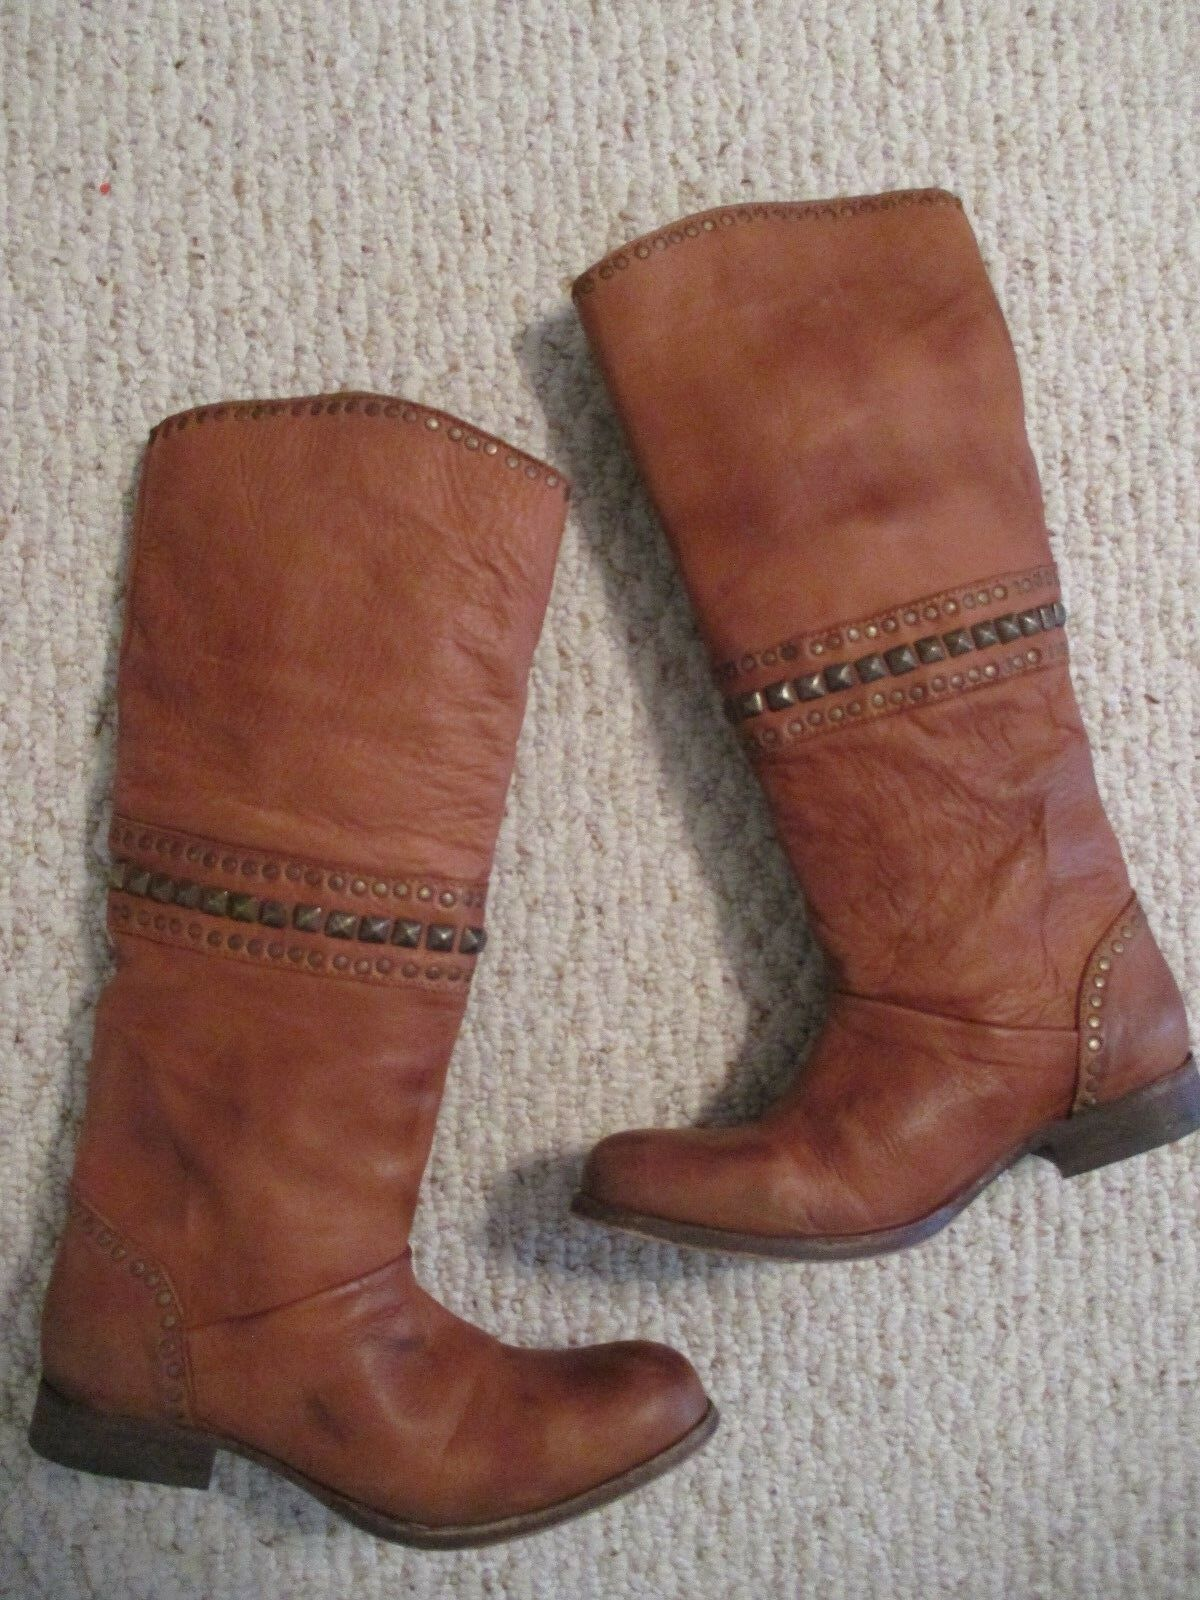 Free People Boots Heartworn Antiqued Stud Distressed Tobacco Size 36 NEW